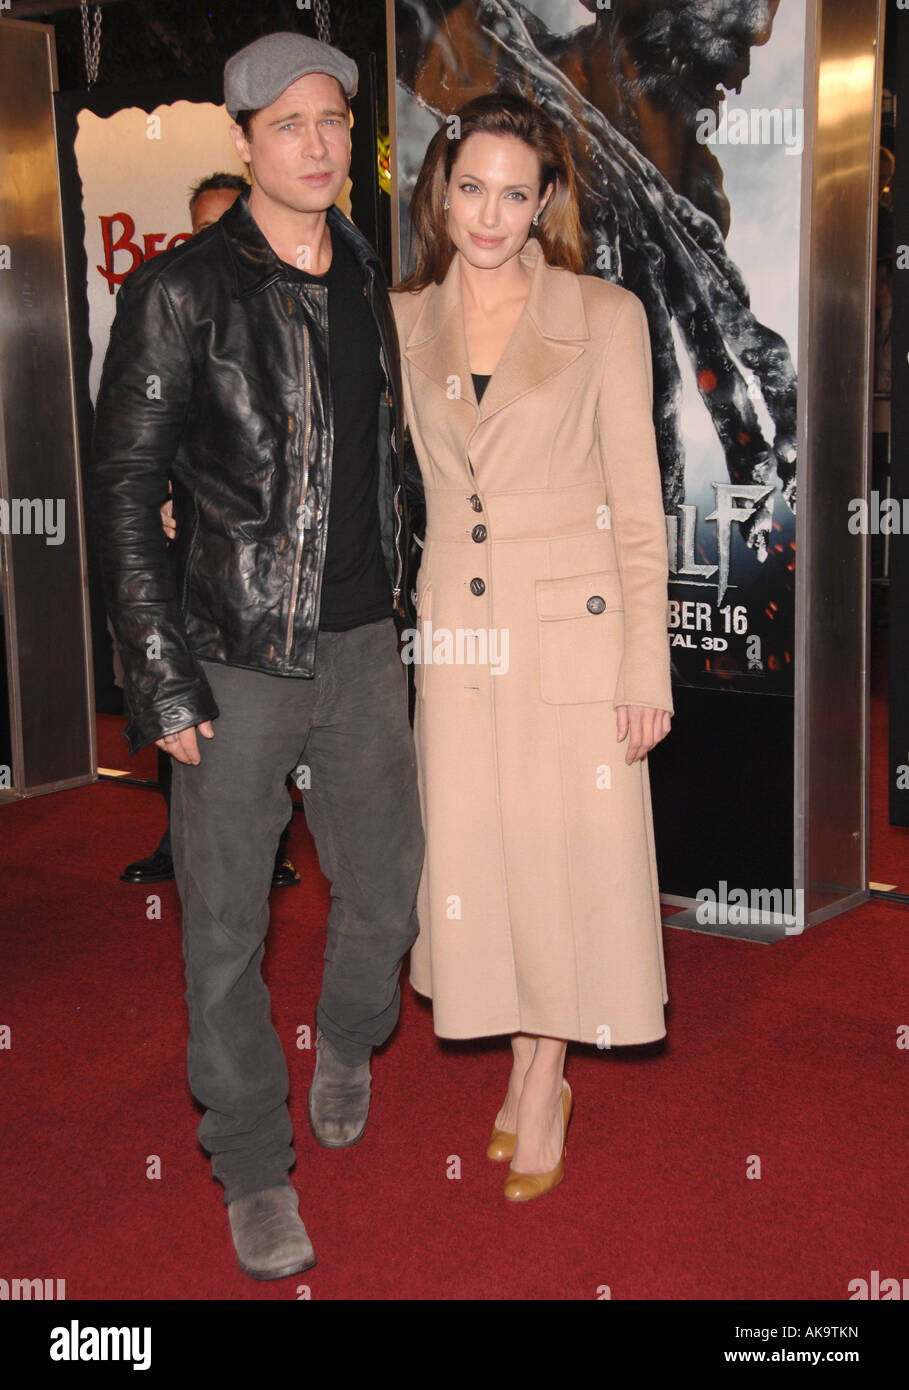 Angelina Jolie and Brad Pitt at the Los Angeles premiere of Beowulf - Stock Image